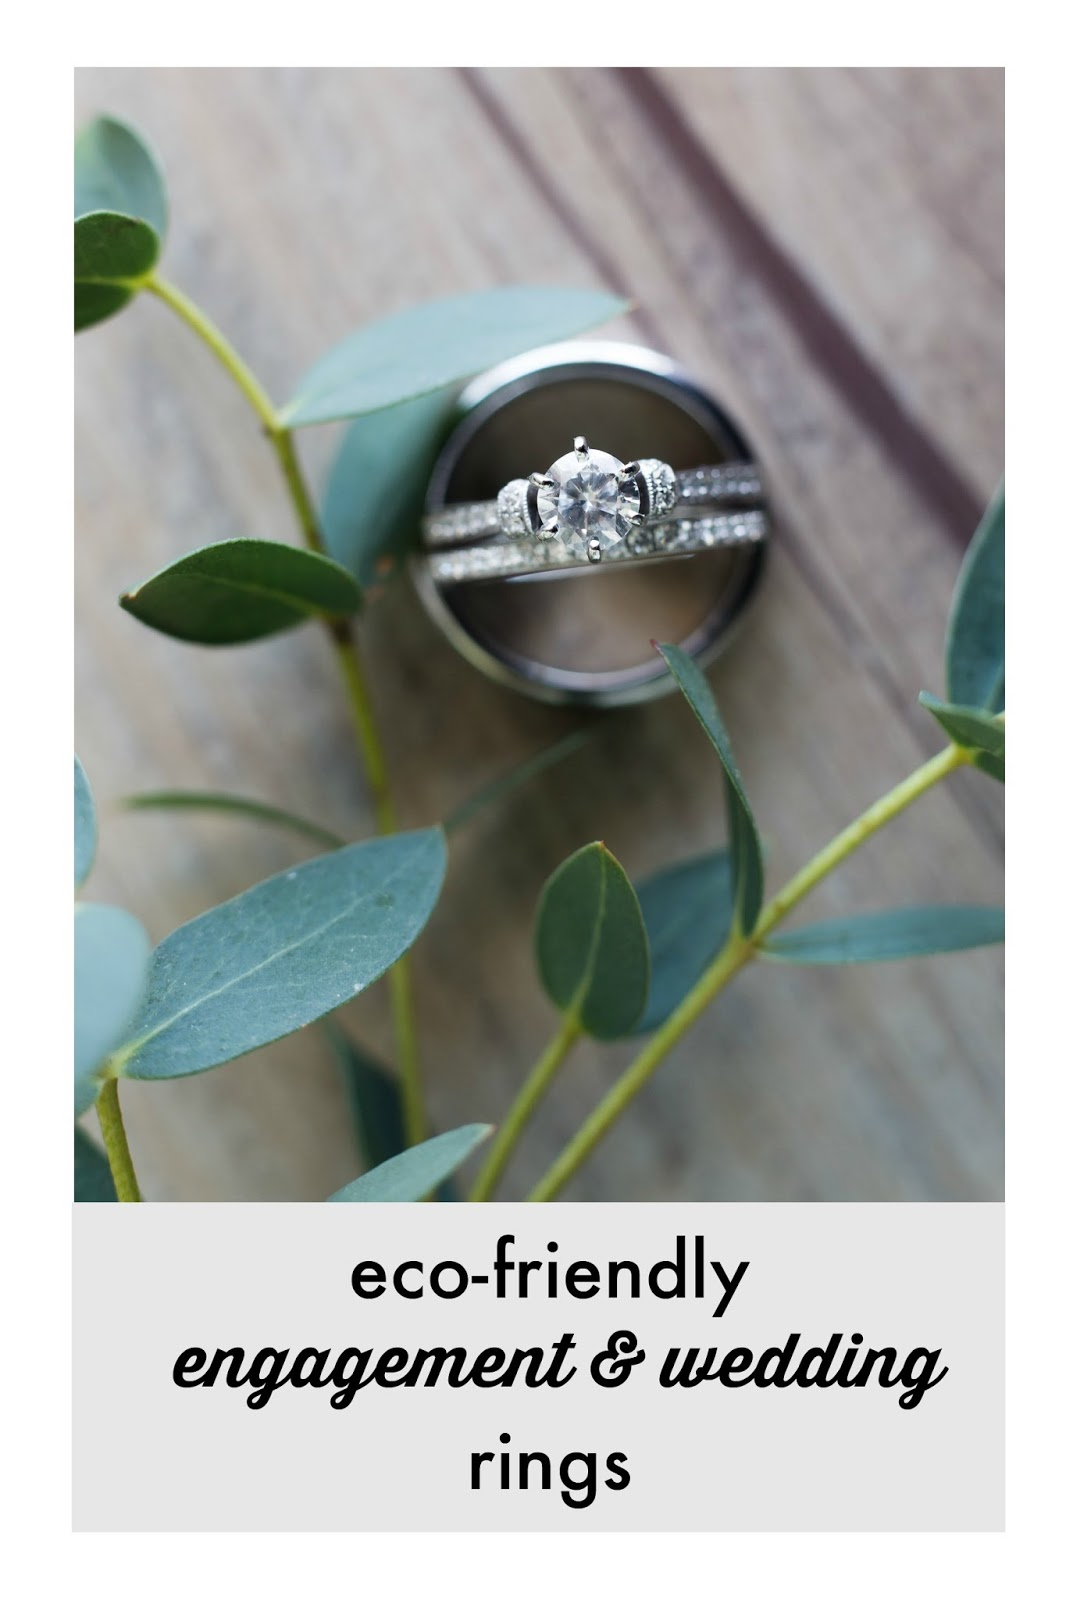 wedding wednesday with these rings wedding rings dollars Plus you can save money save fossil fuels even reuse metal or gems this way so your bands for life can do a whole lot of good